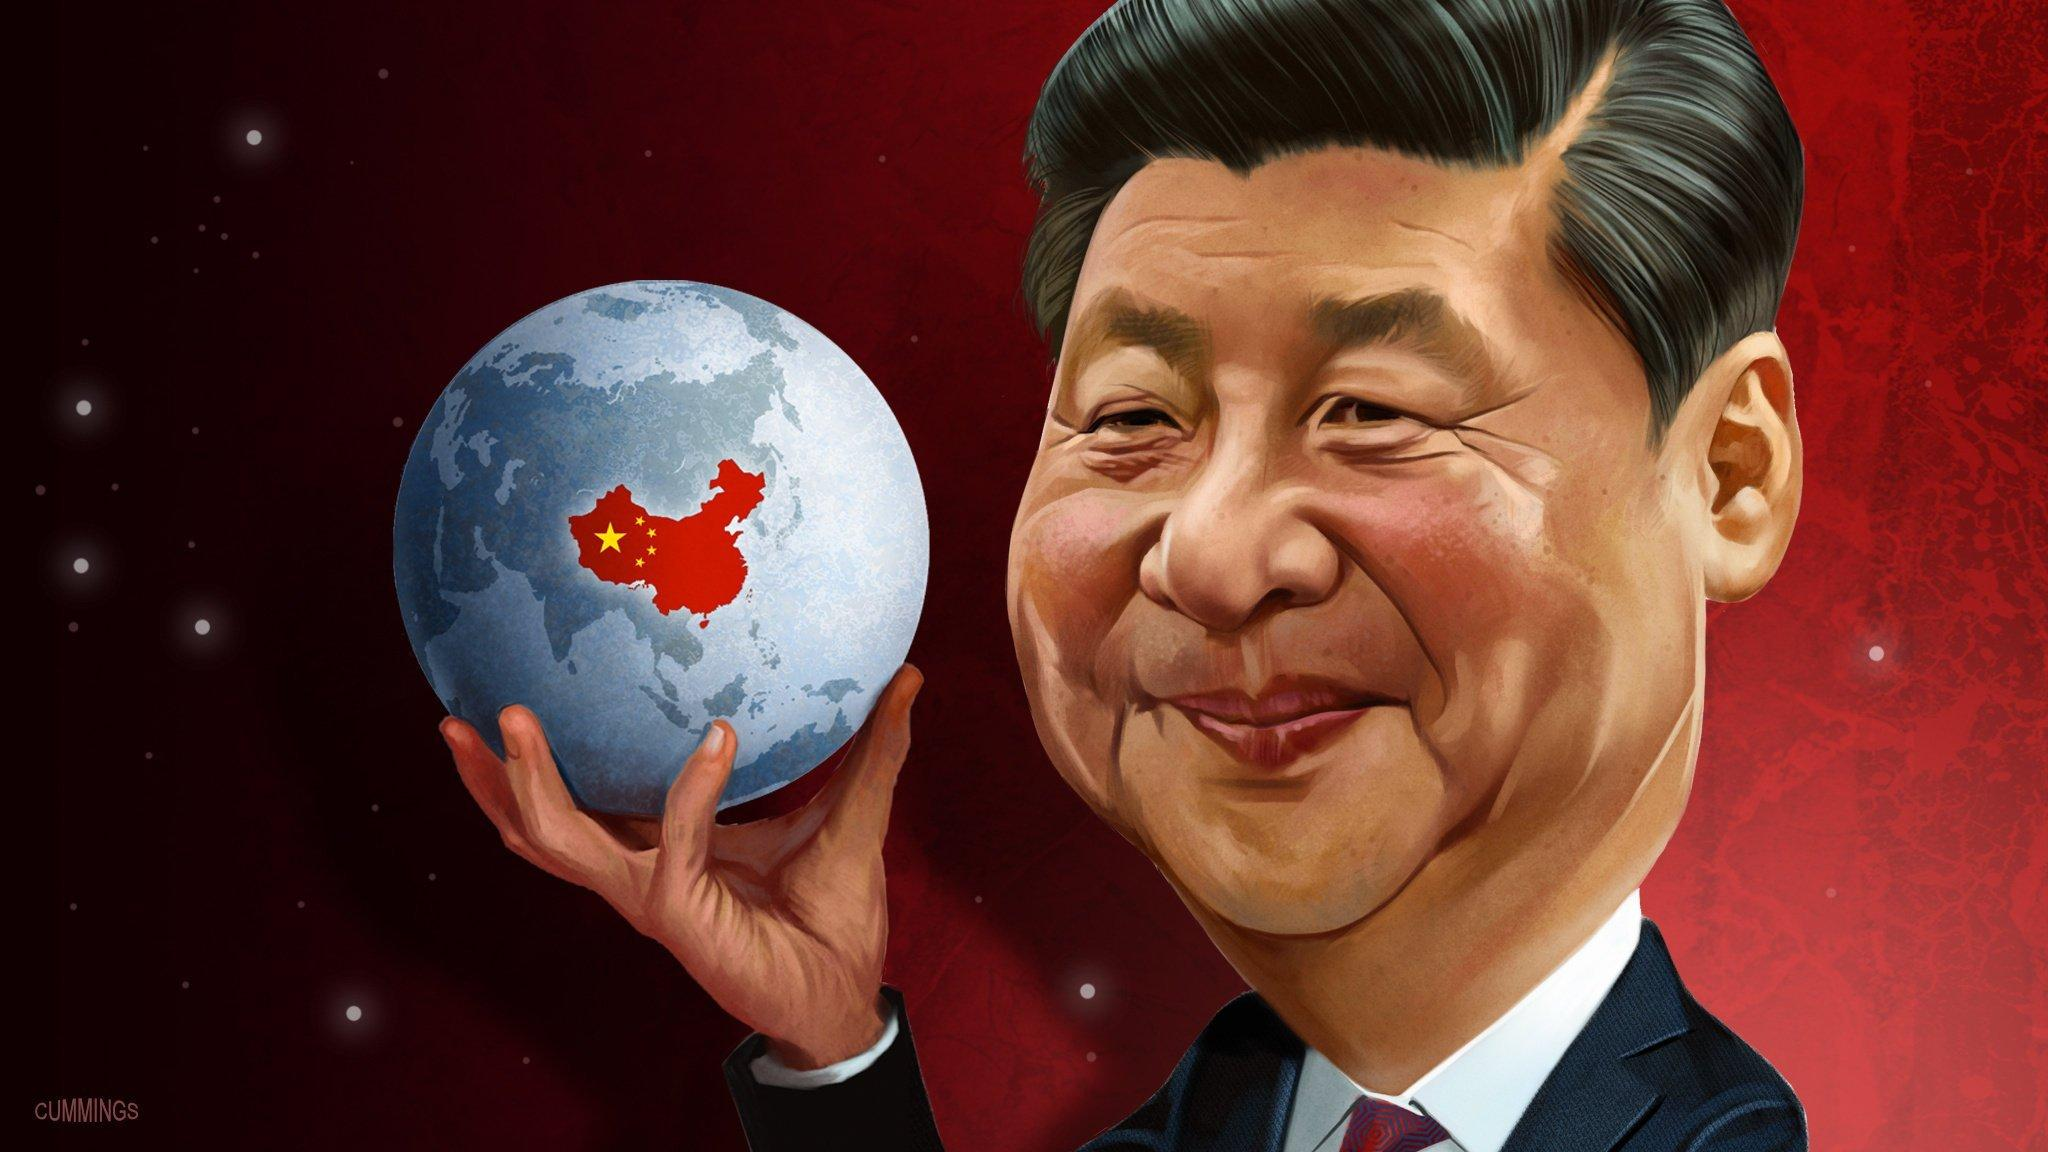 And now China is planning to sue think tanks and researchers